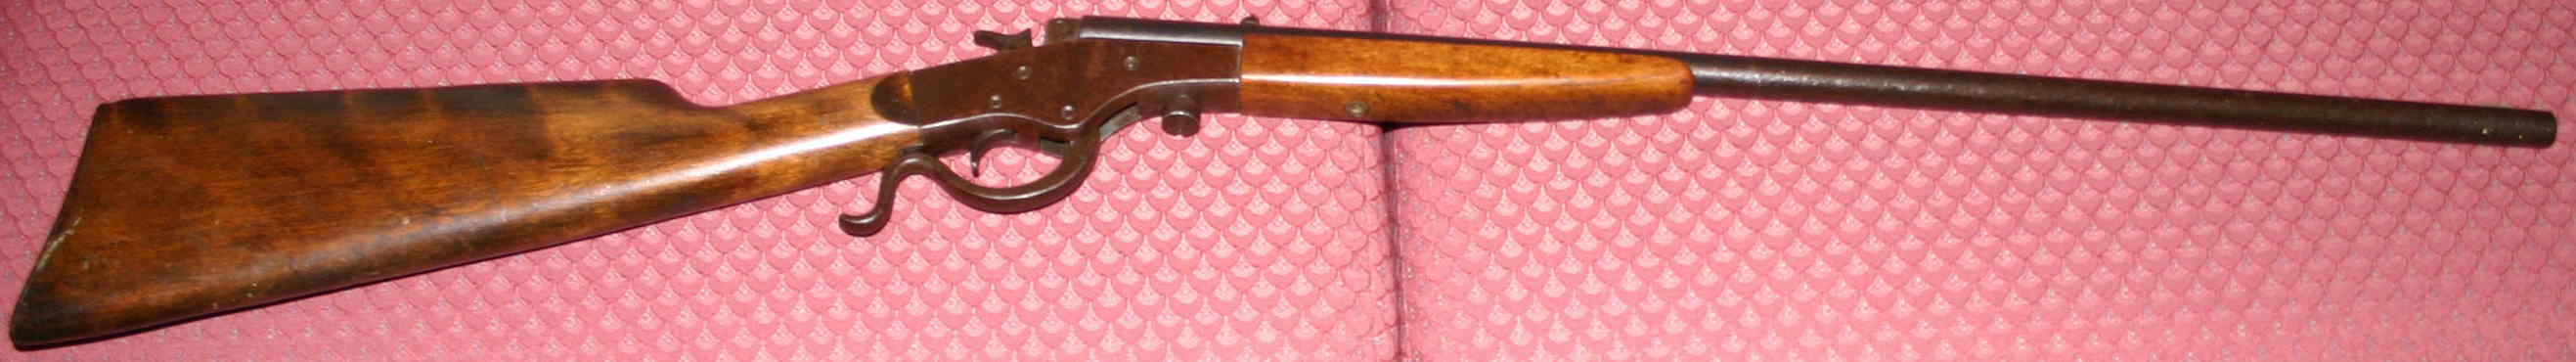 Allen Korns' boyhood .22 cal. rifle